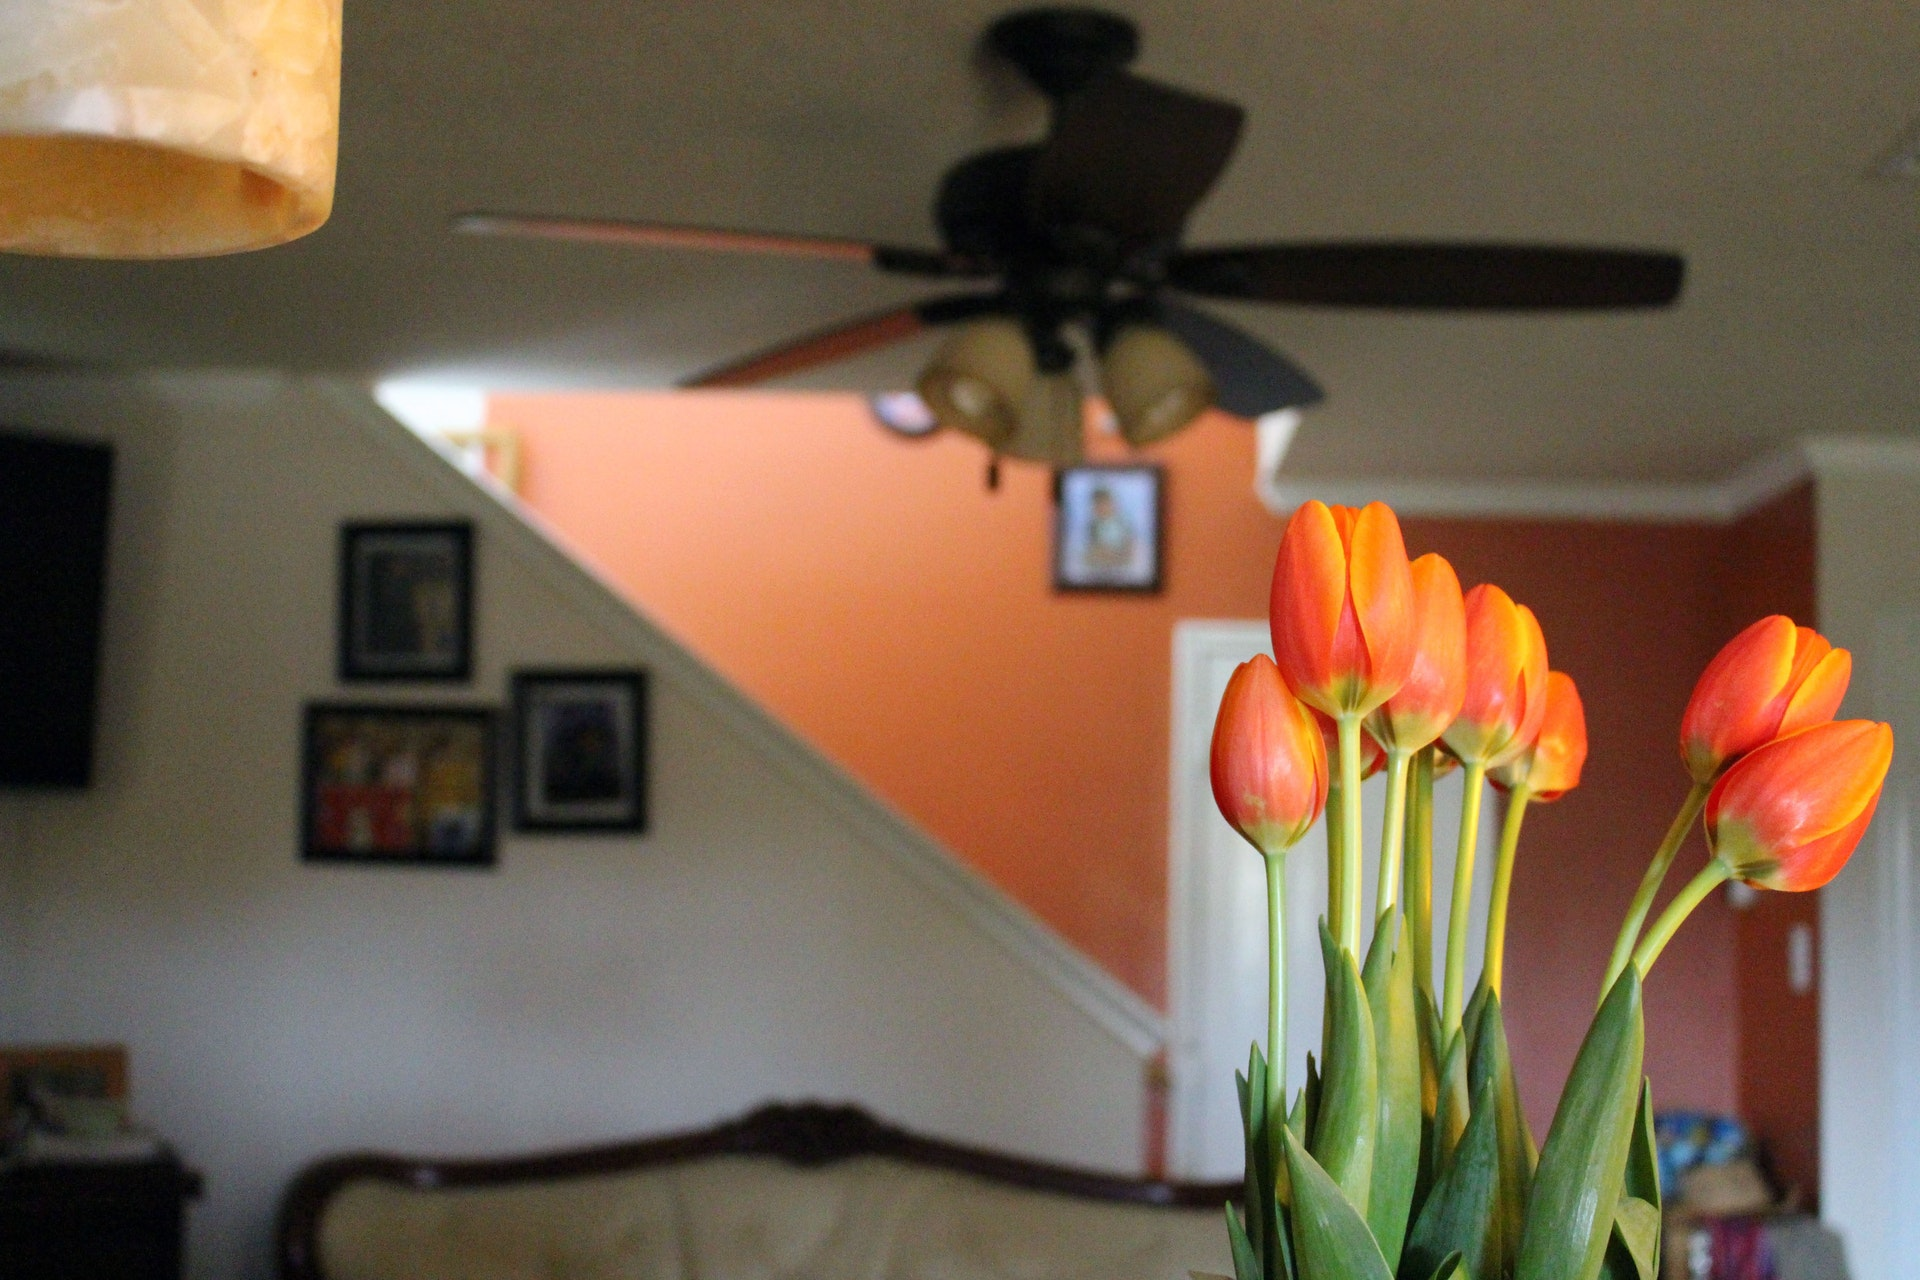 blooms-blossoms-ceiling-fan-276538